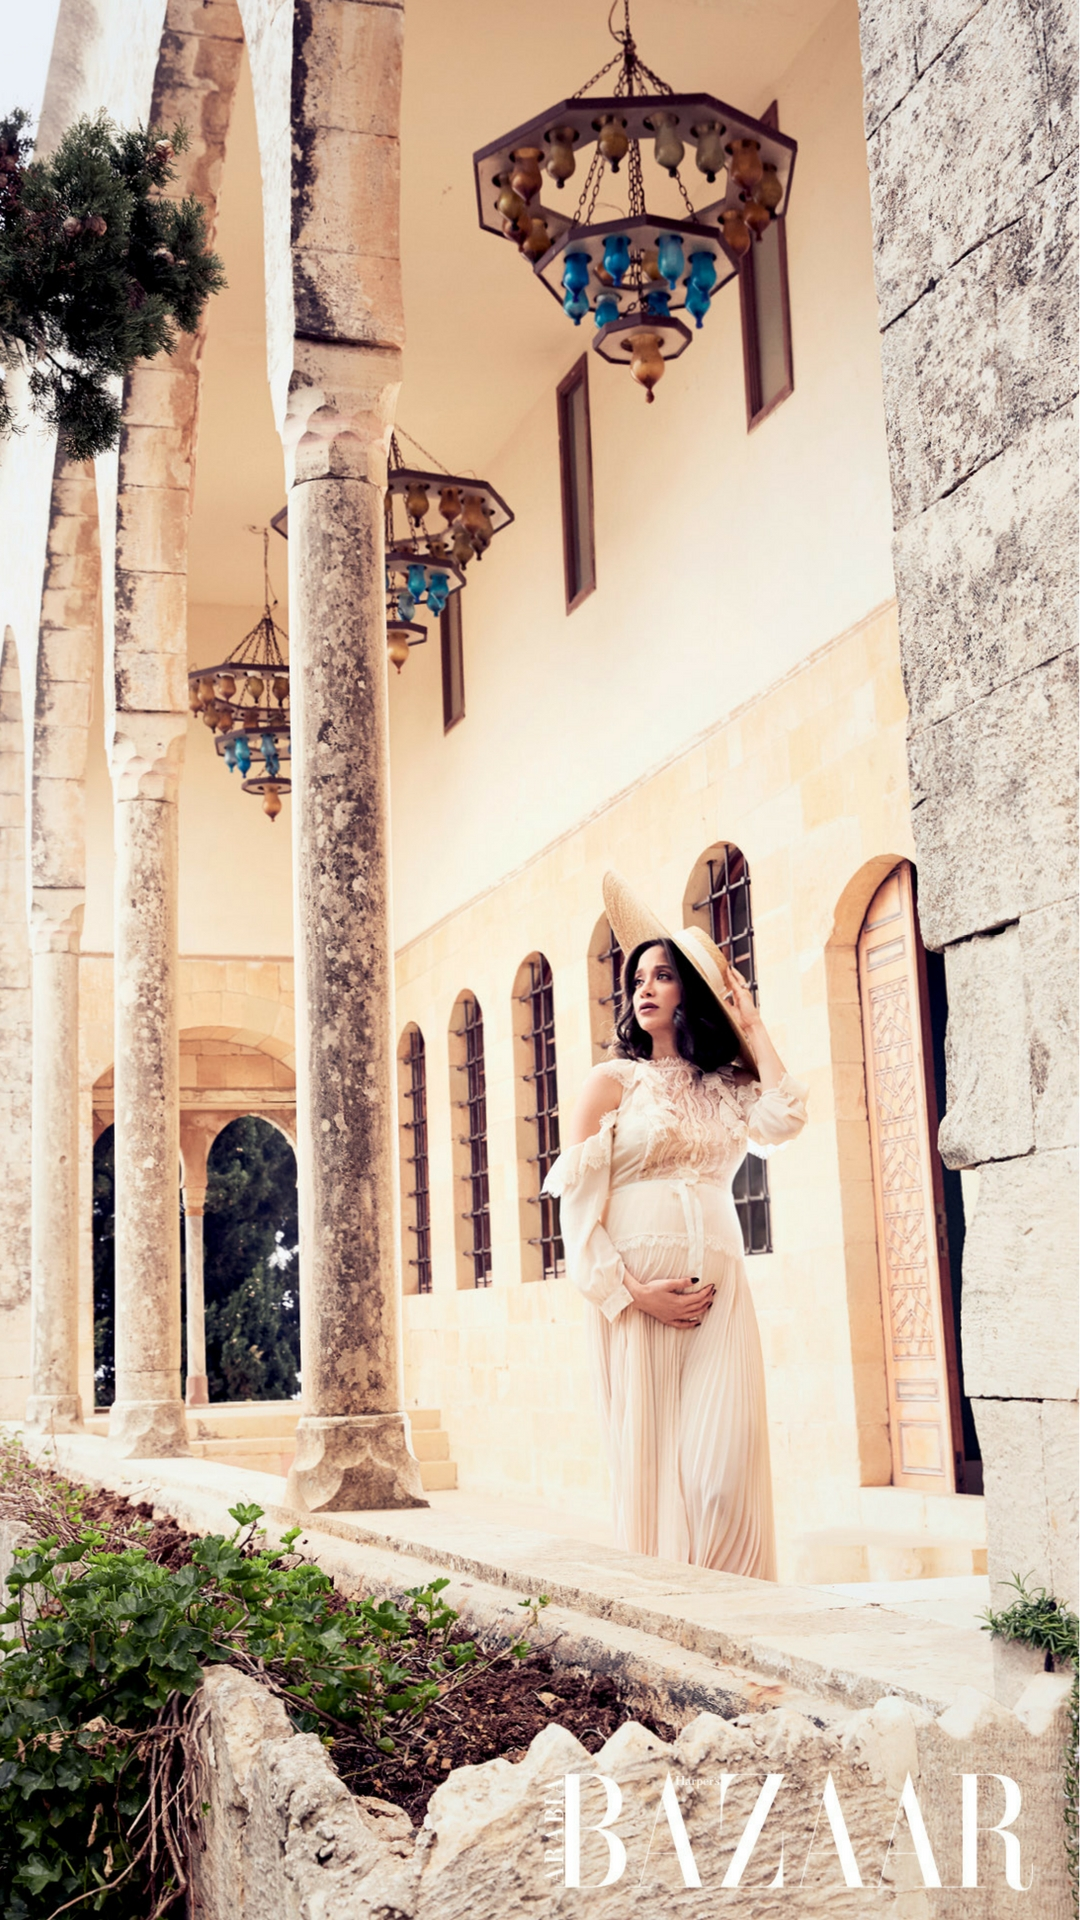 As she prepares to welcome her first baby this April, Bazaar  spends time with Lebanese influencer Lana El Sahely to talk pregnancy, motherhood and making the world a happier place for the next generation